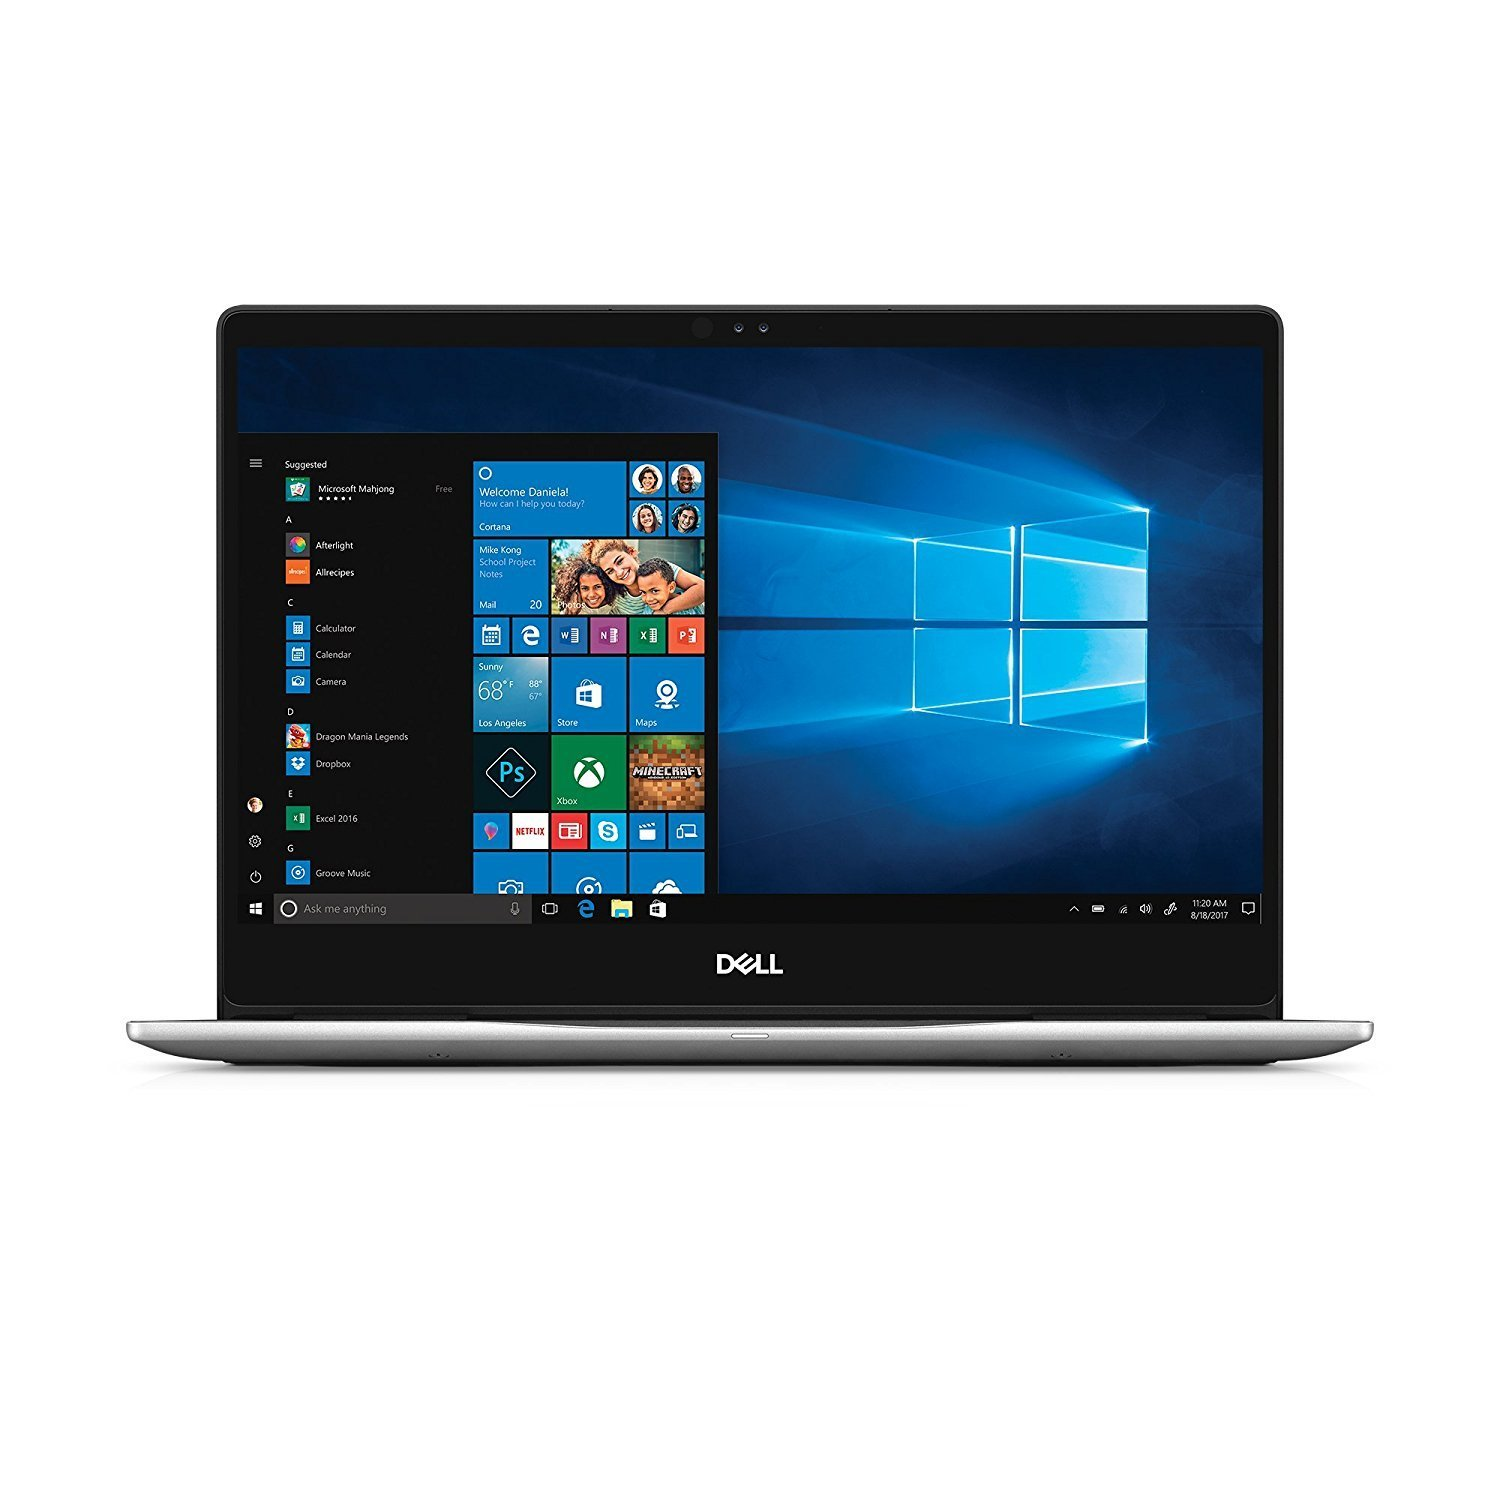 Dell Inspiron 13 7000 Laptop, Intel i5-8250U up to 2.5GHz, 8GB DDR4, 256GB SSD, 13.3 inch FHD Touch Screen, Backlit Keyboard